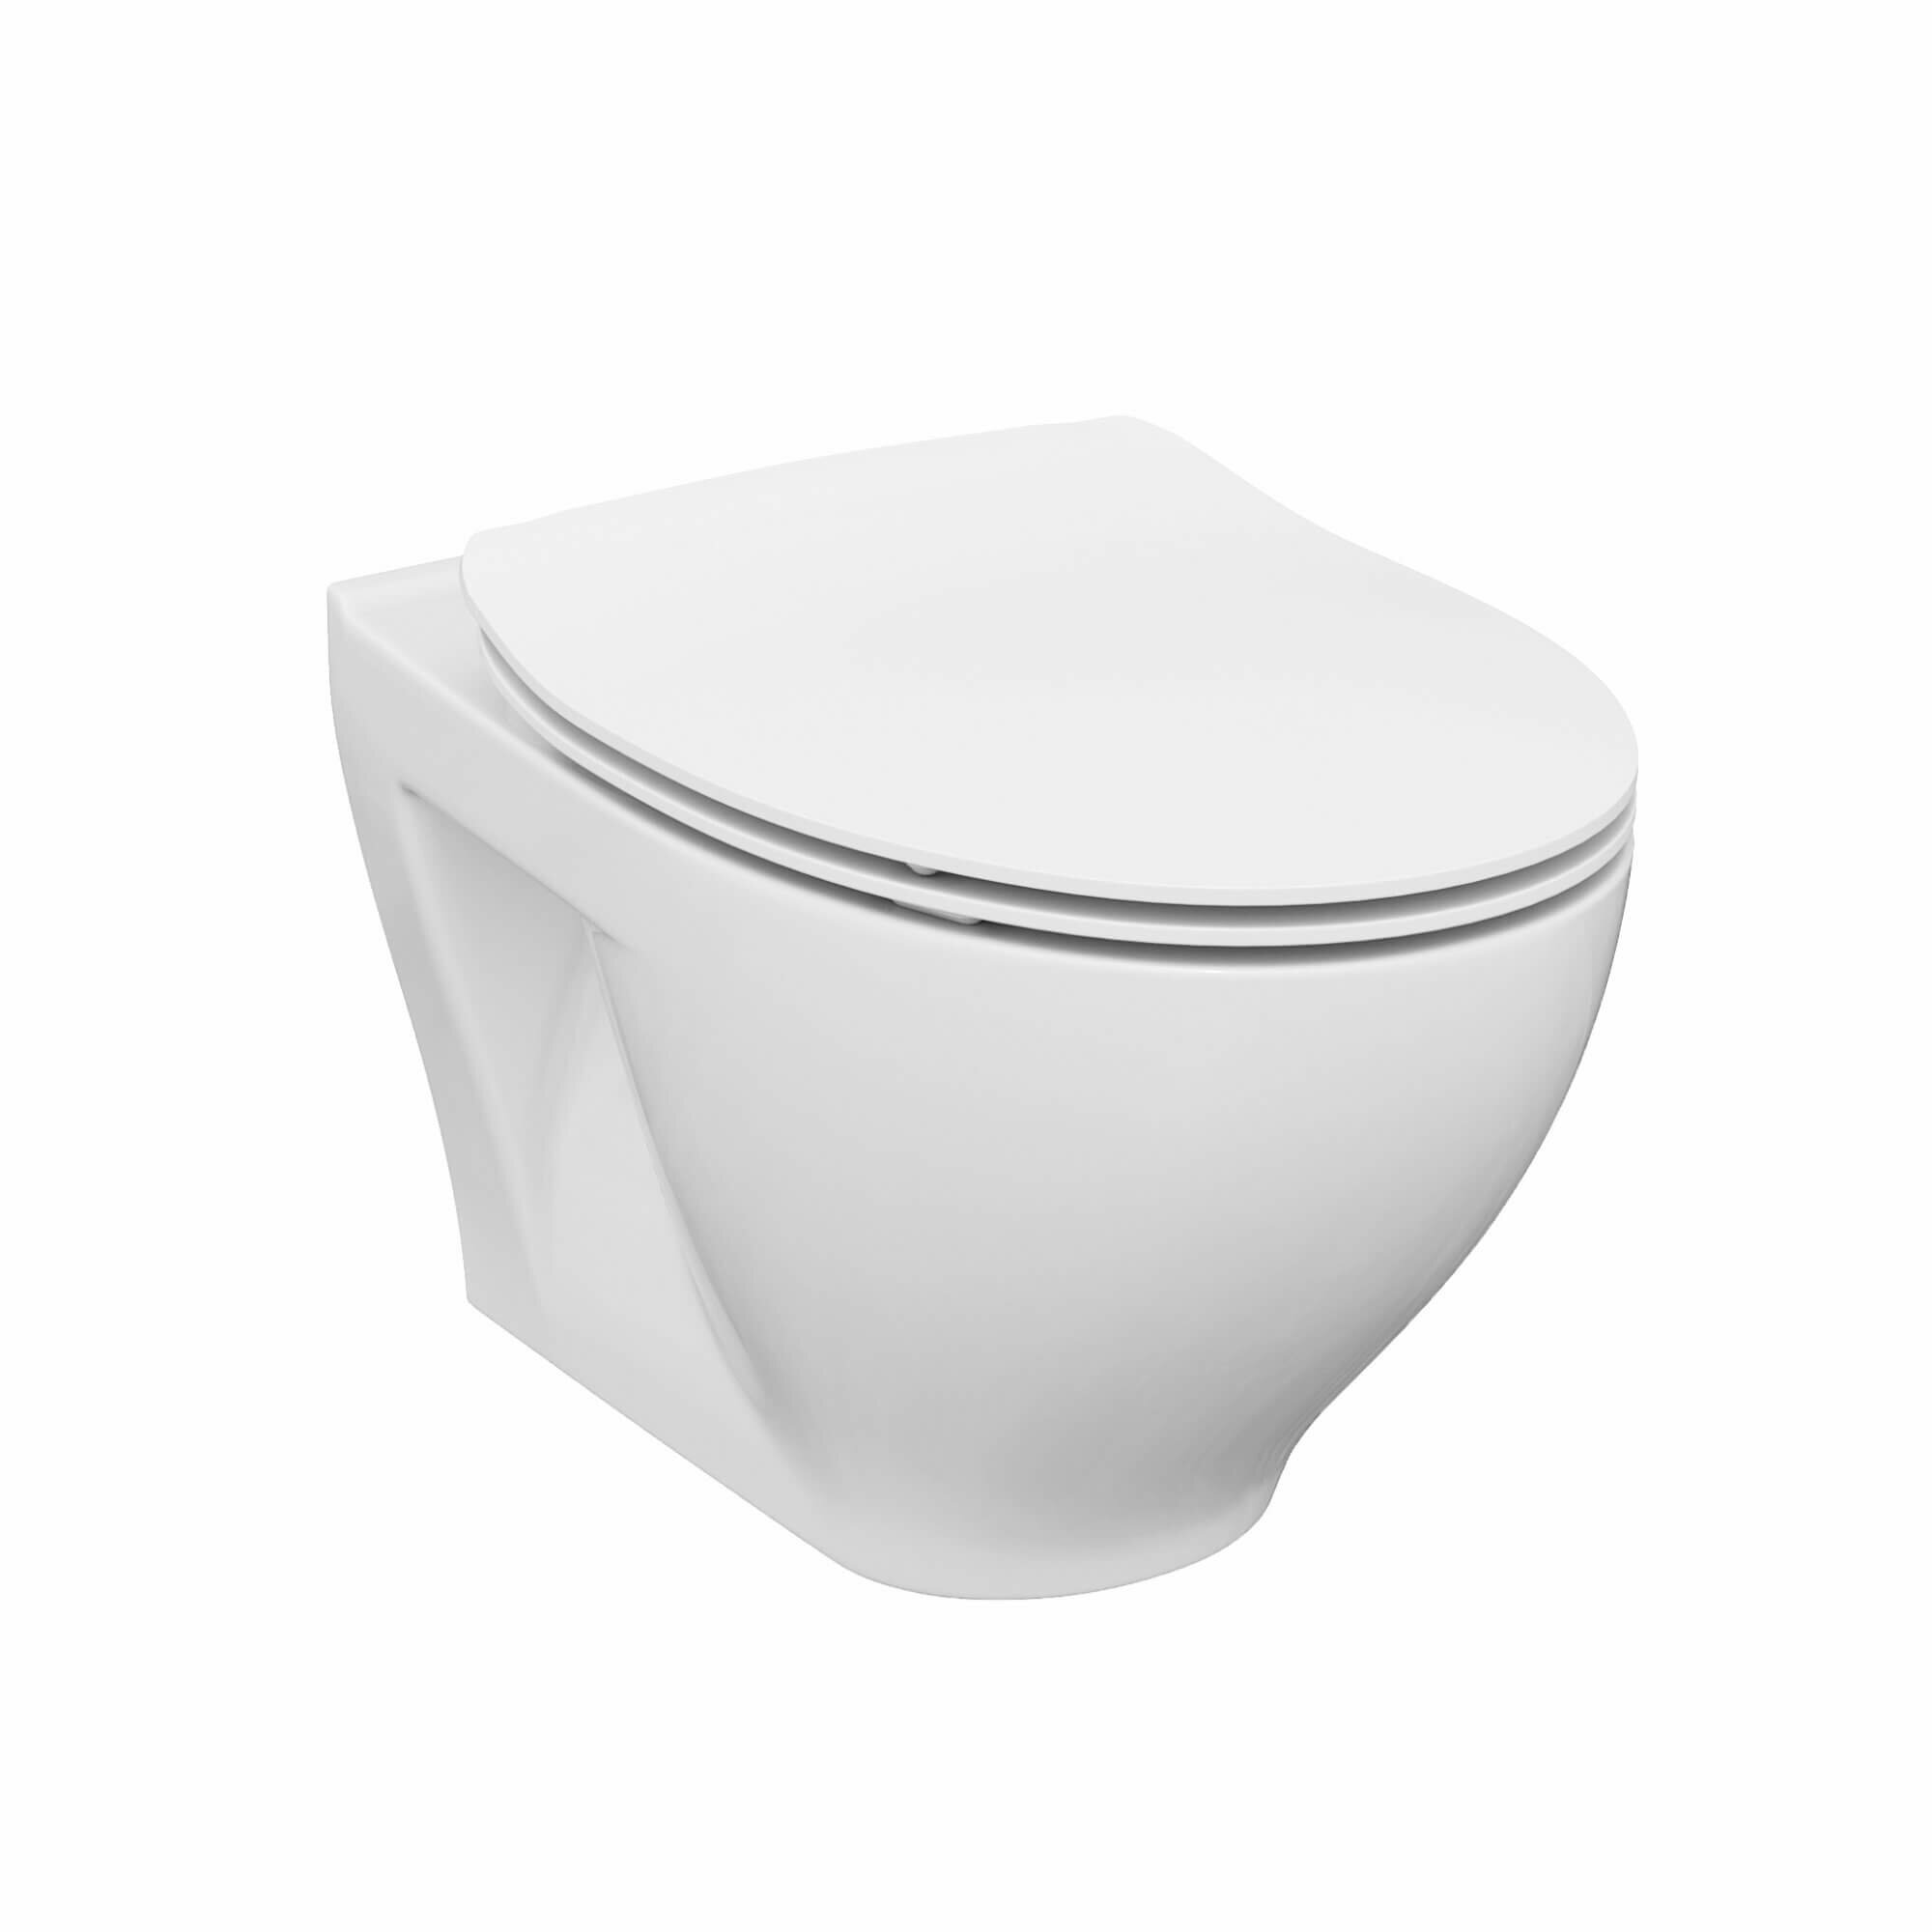 Fine Fixtures Stormon Dual Flush Elongated Wall Hung Toilet Seat Included Reviews Wayfair